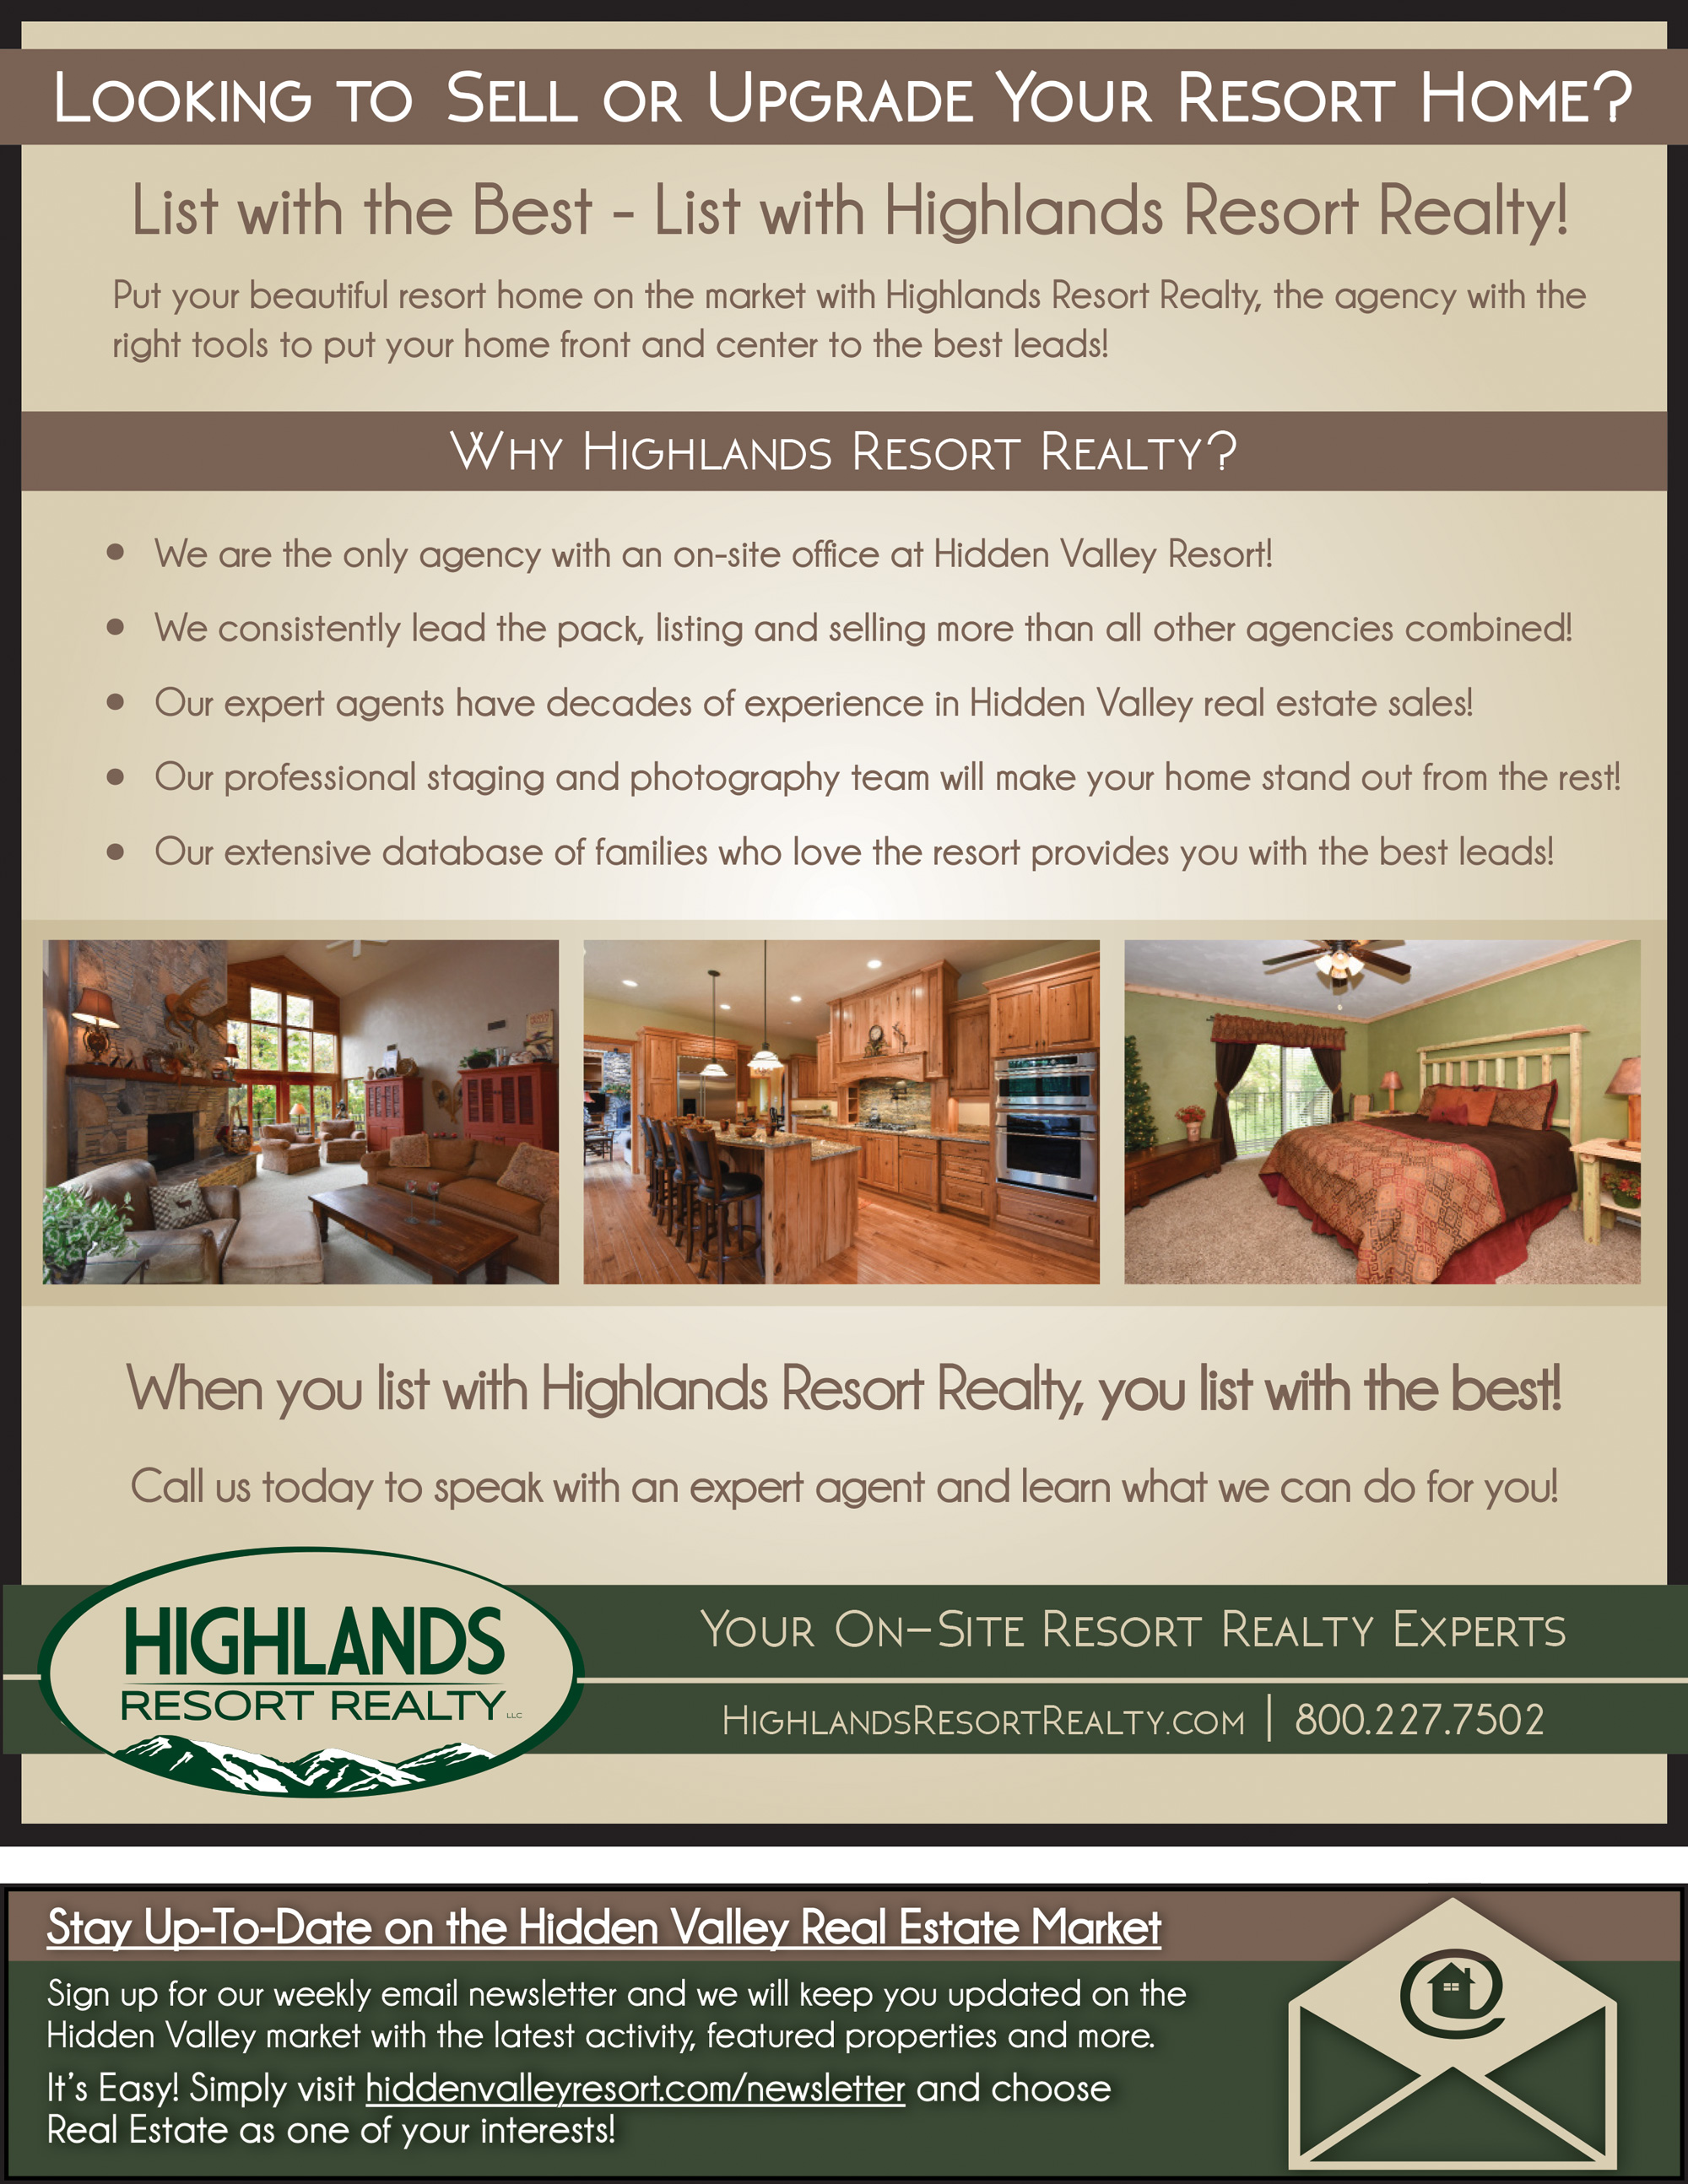 Highlands Resort Realty